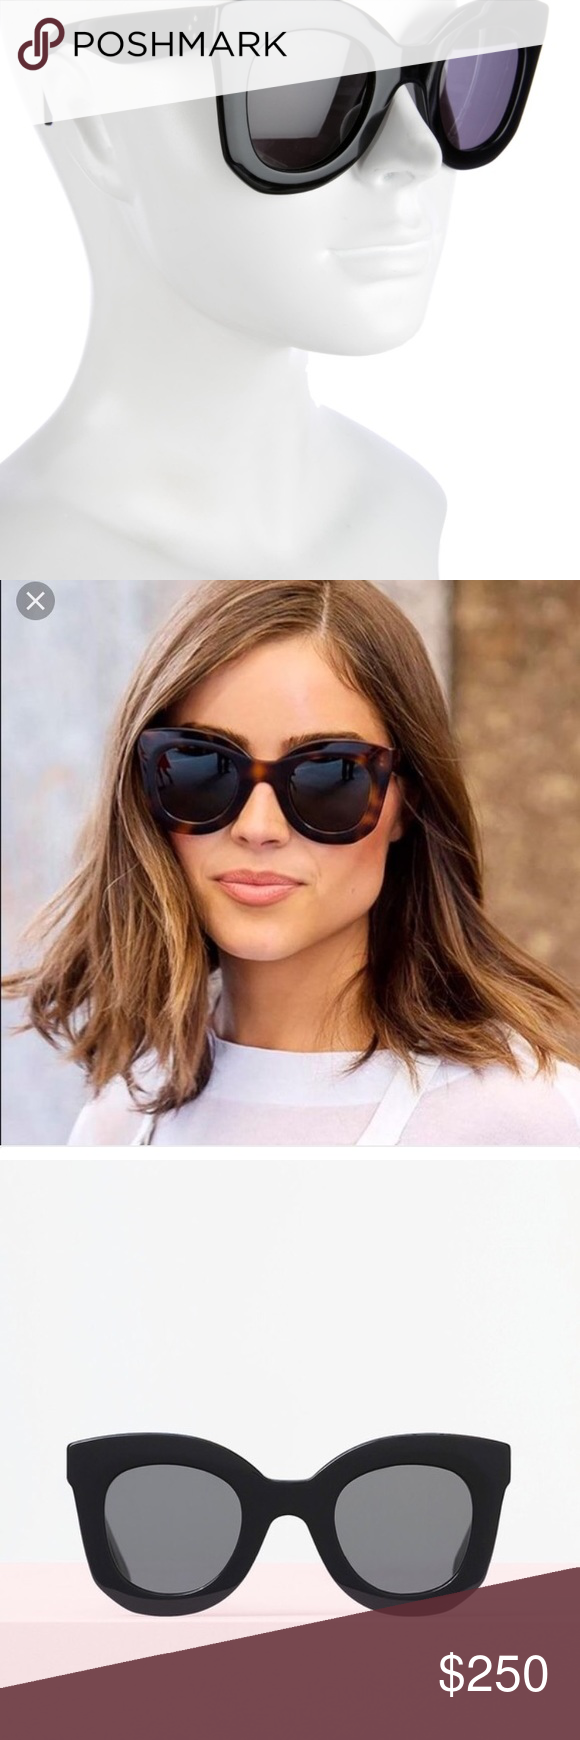 9e9ebd9a971 Celine Baby Marta Sunglasses Worn once. Comes with case. 100 percent  authentic. Paid 365 plus tax from Celine. Celine Accessories Sunglasses